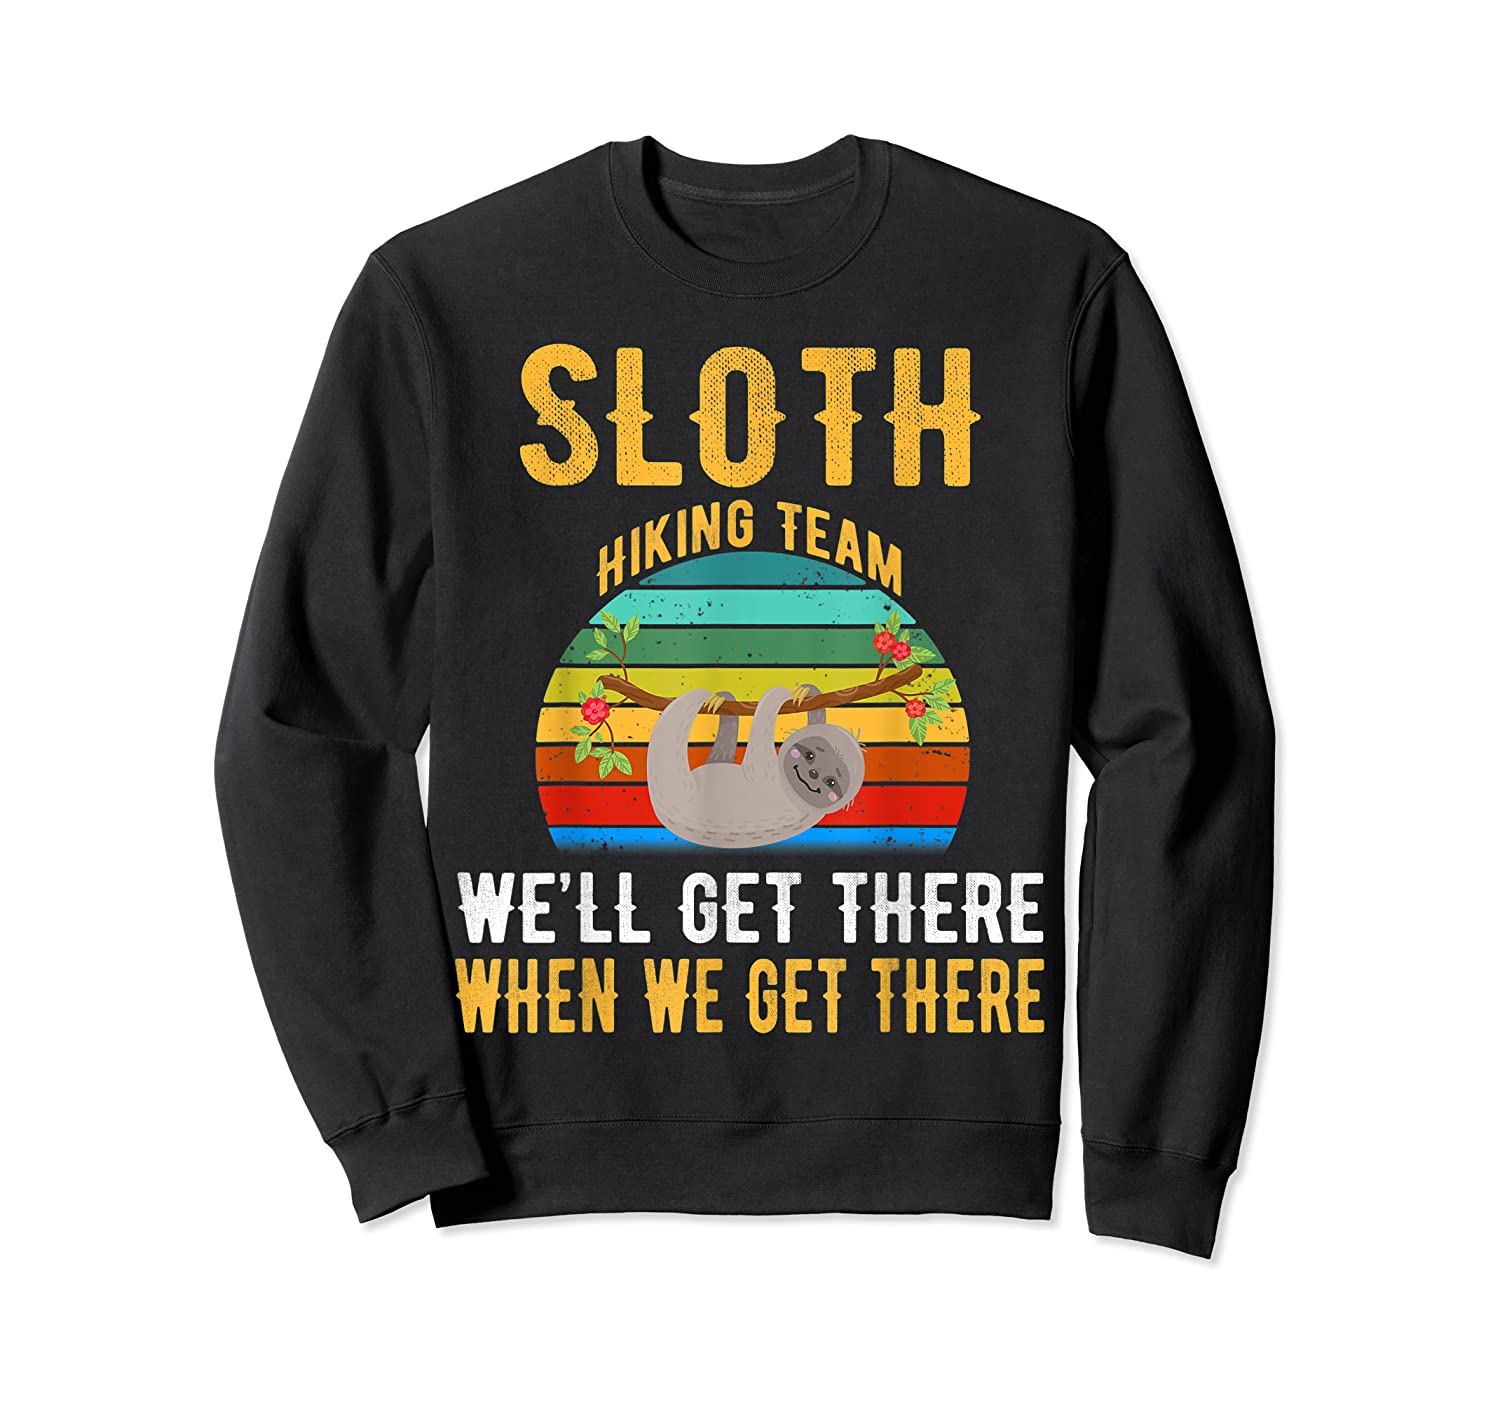 Sloth Hiking Team We Will Get There When Get There Shirt Crewneck Sweater